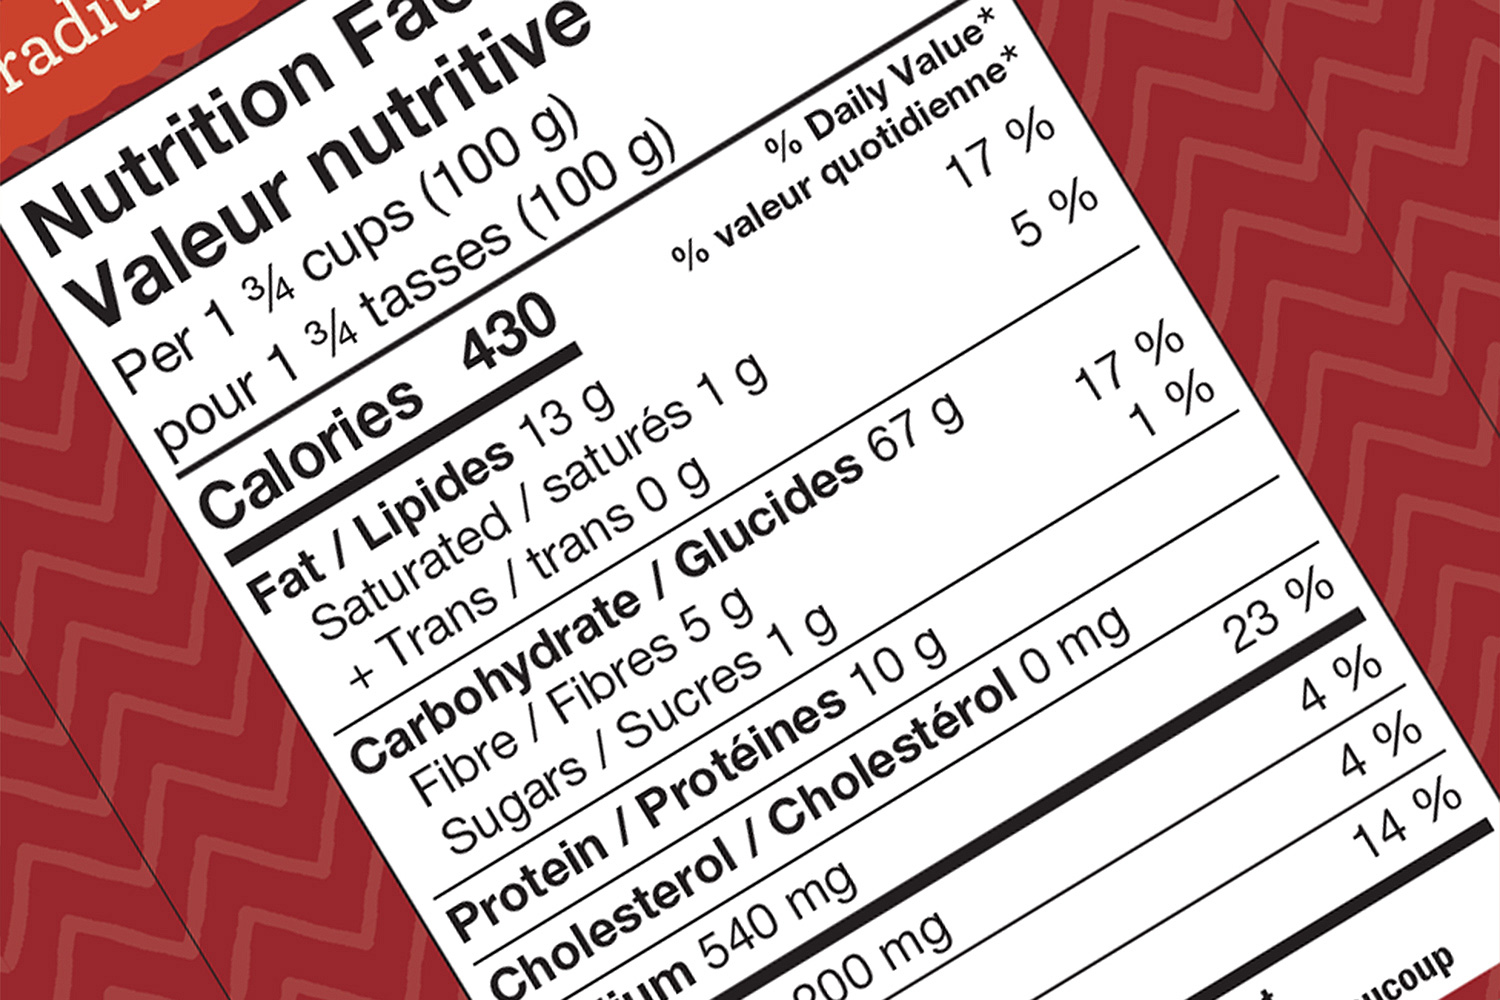 USA & Canada Food Labeling: 2016 New Regulations